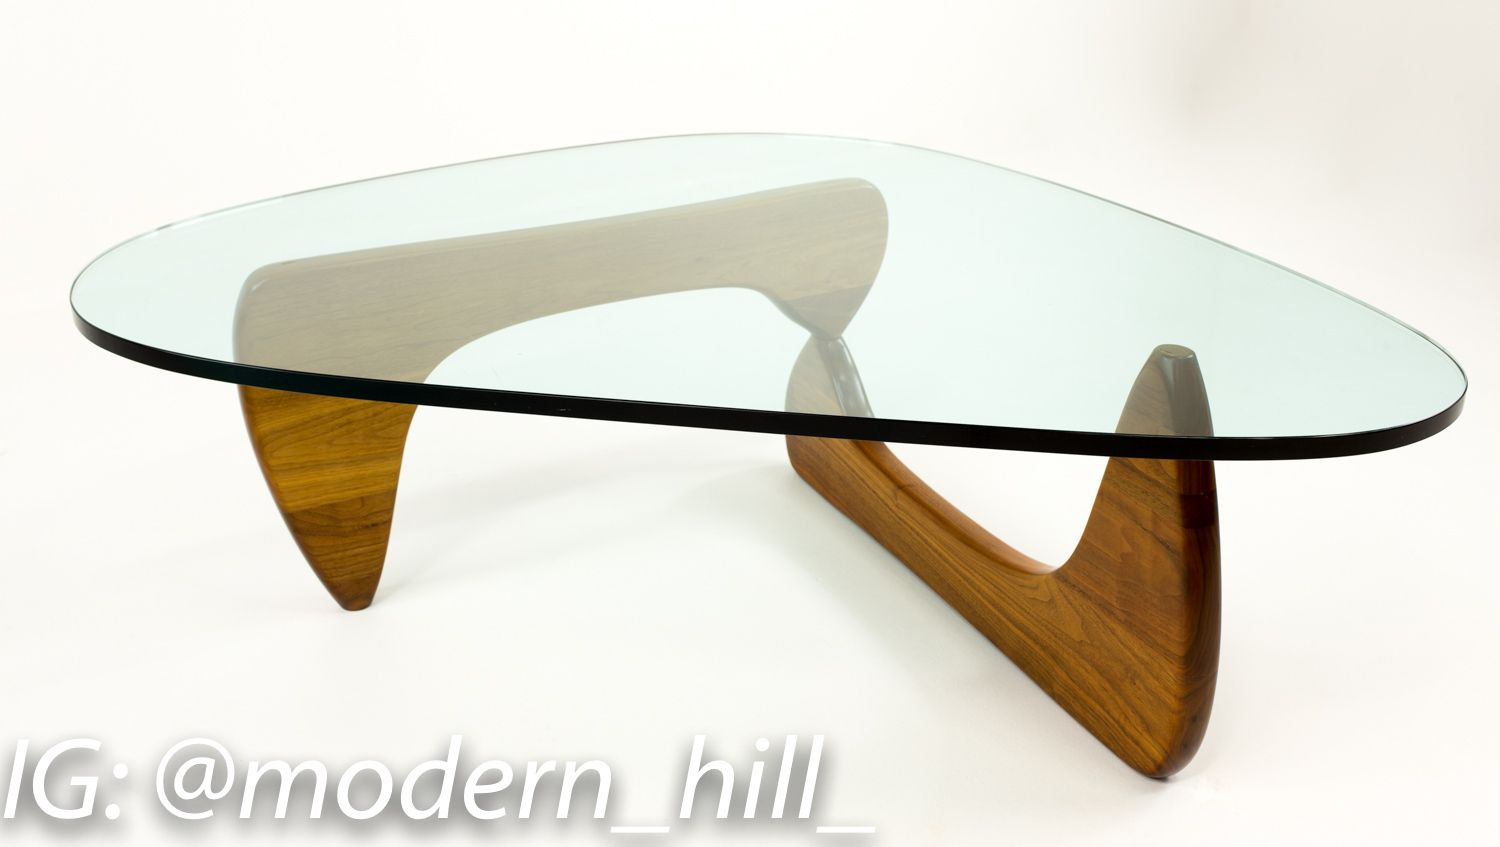 Early Isamu Noguchi For Herman Miller Glass Coffee Table Miller Glass Glass Coffee Table Coffee Table [ 847 x 1500 Pixel ]